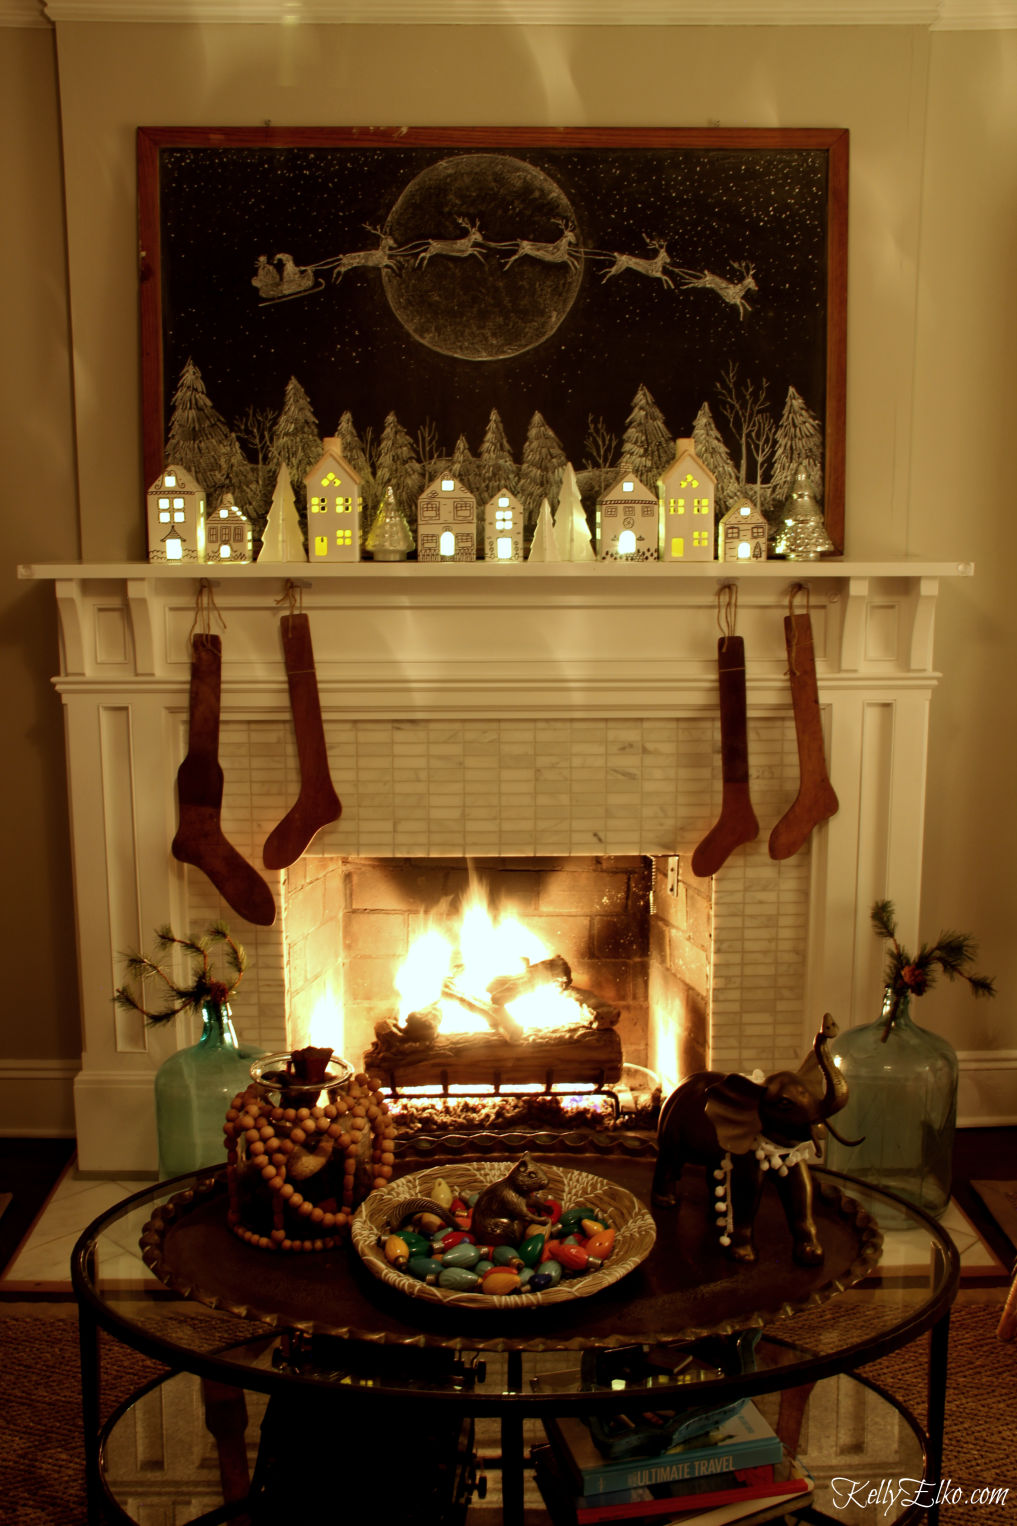 Don't miss this Christmas home tour at night! Love the glowing Christmas village and roaring fire kellyelko.com #christmas #christmslights #christmasdecor #christmasdecorating #christmasdiningroom #vintagechristmas #retrochristmas #christmastrees #christmasmantel #